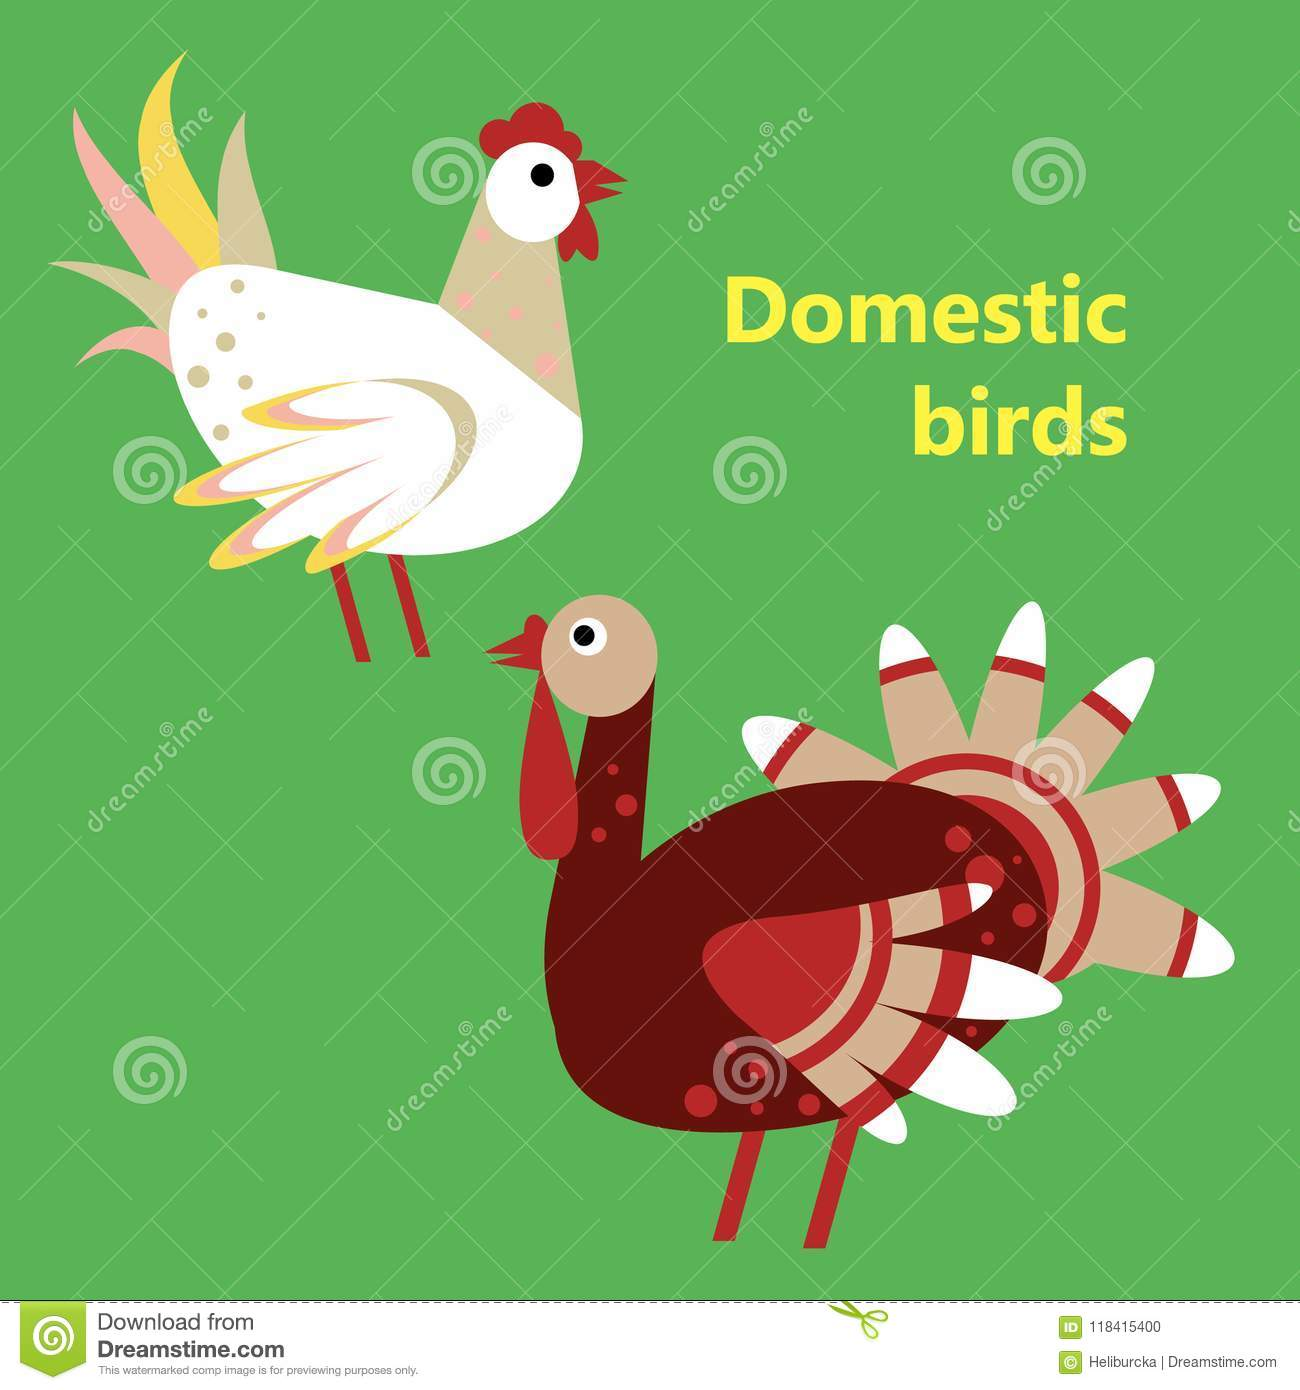 Domestic Birds Rooster And Turkey Stock Vector - Illustration of ...